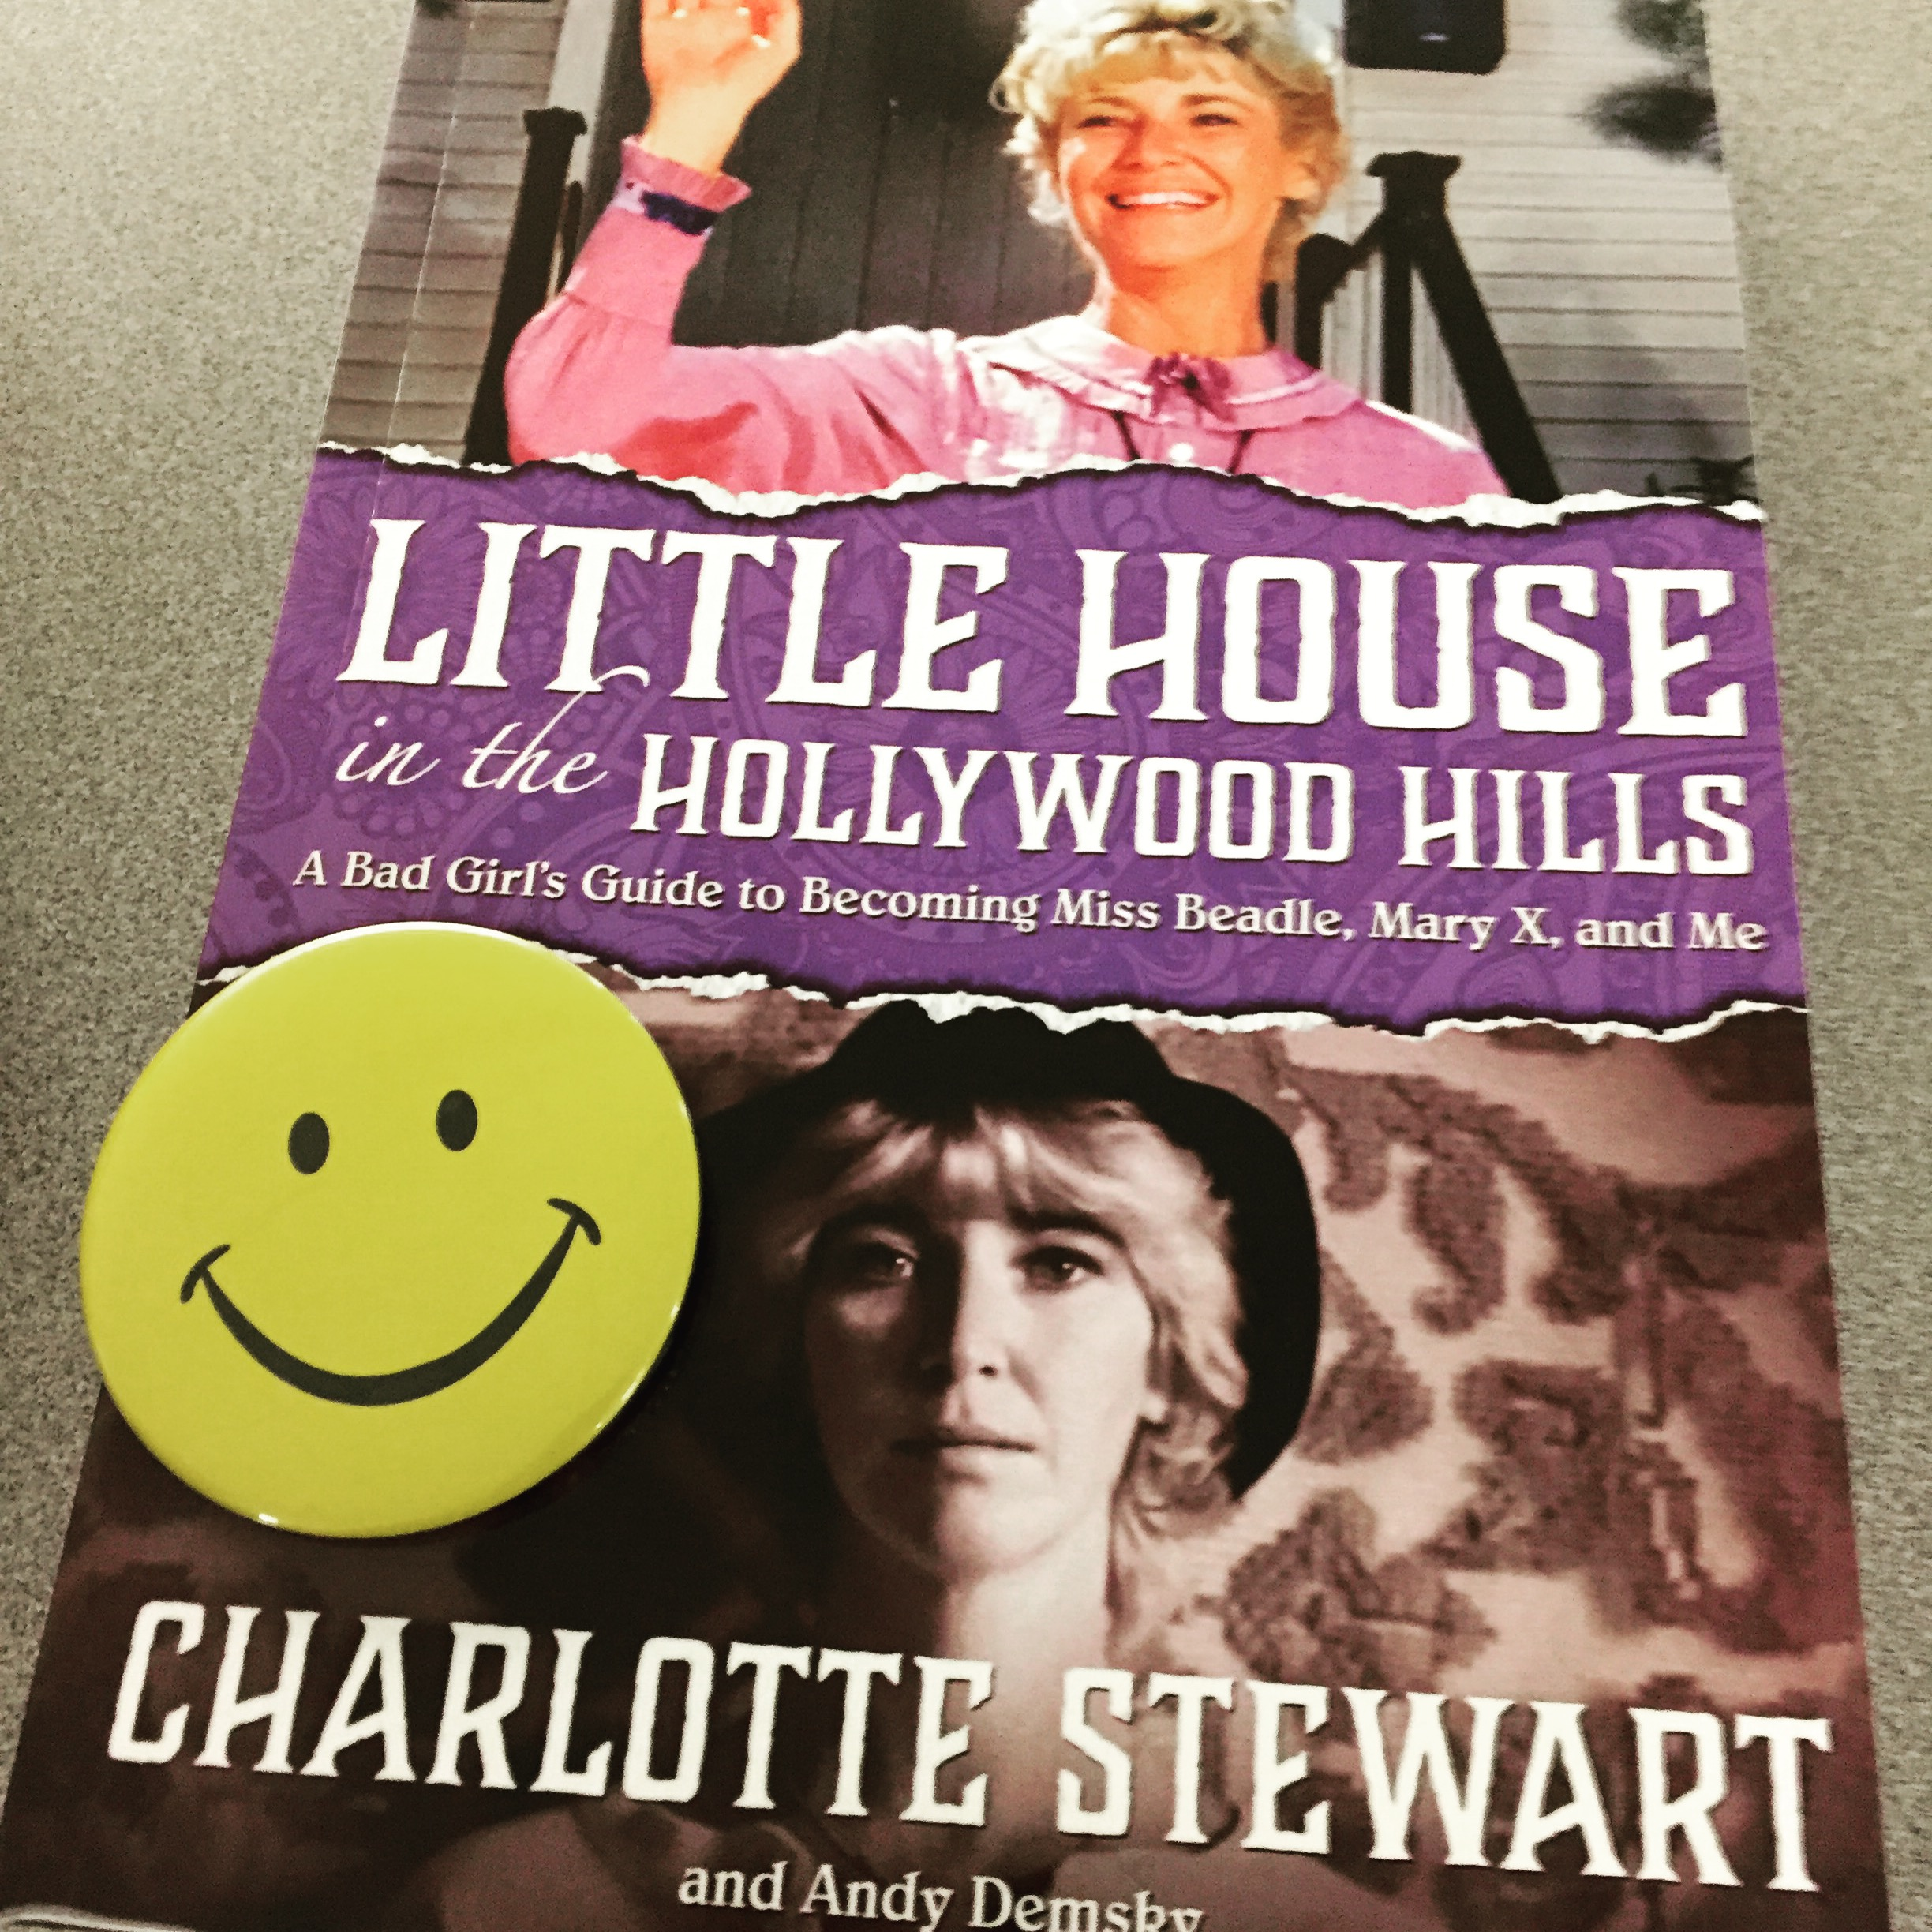 Charlotte Stewart's book is quite the read. Plus, she gave us a Betty Briggs happy-face button to don at the Fest.